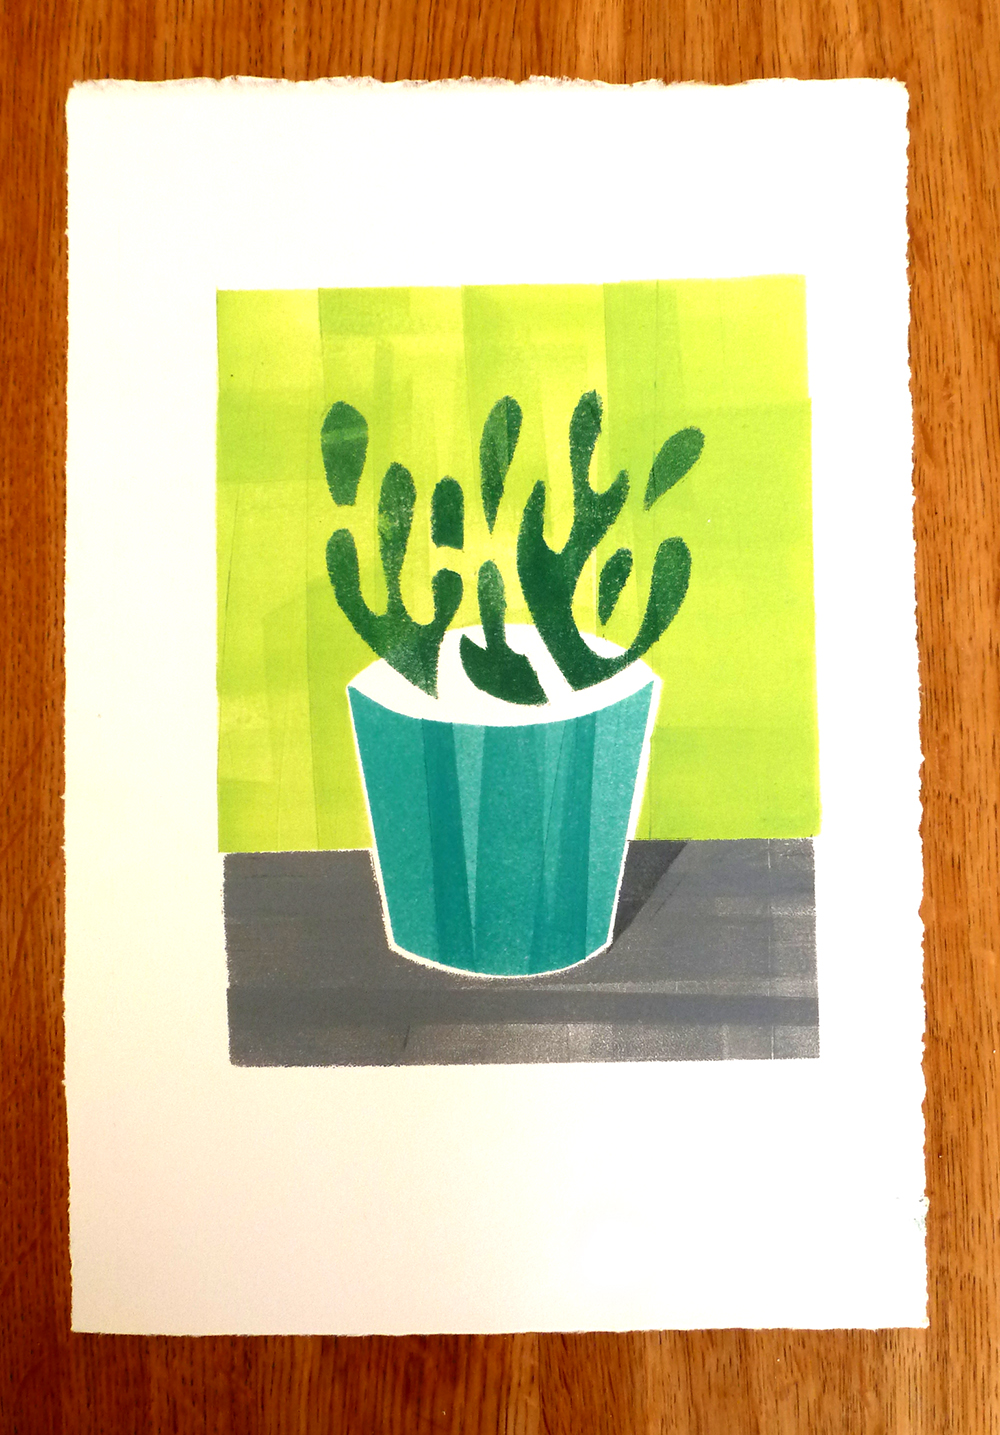 First stencil prints — Corinne Welch